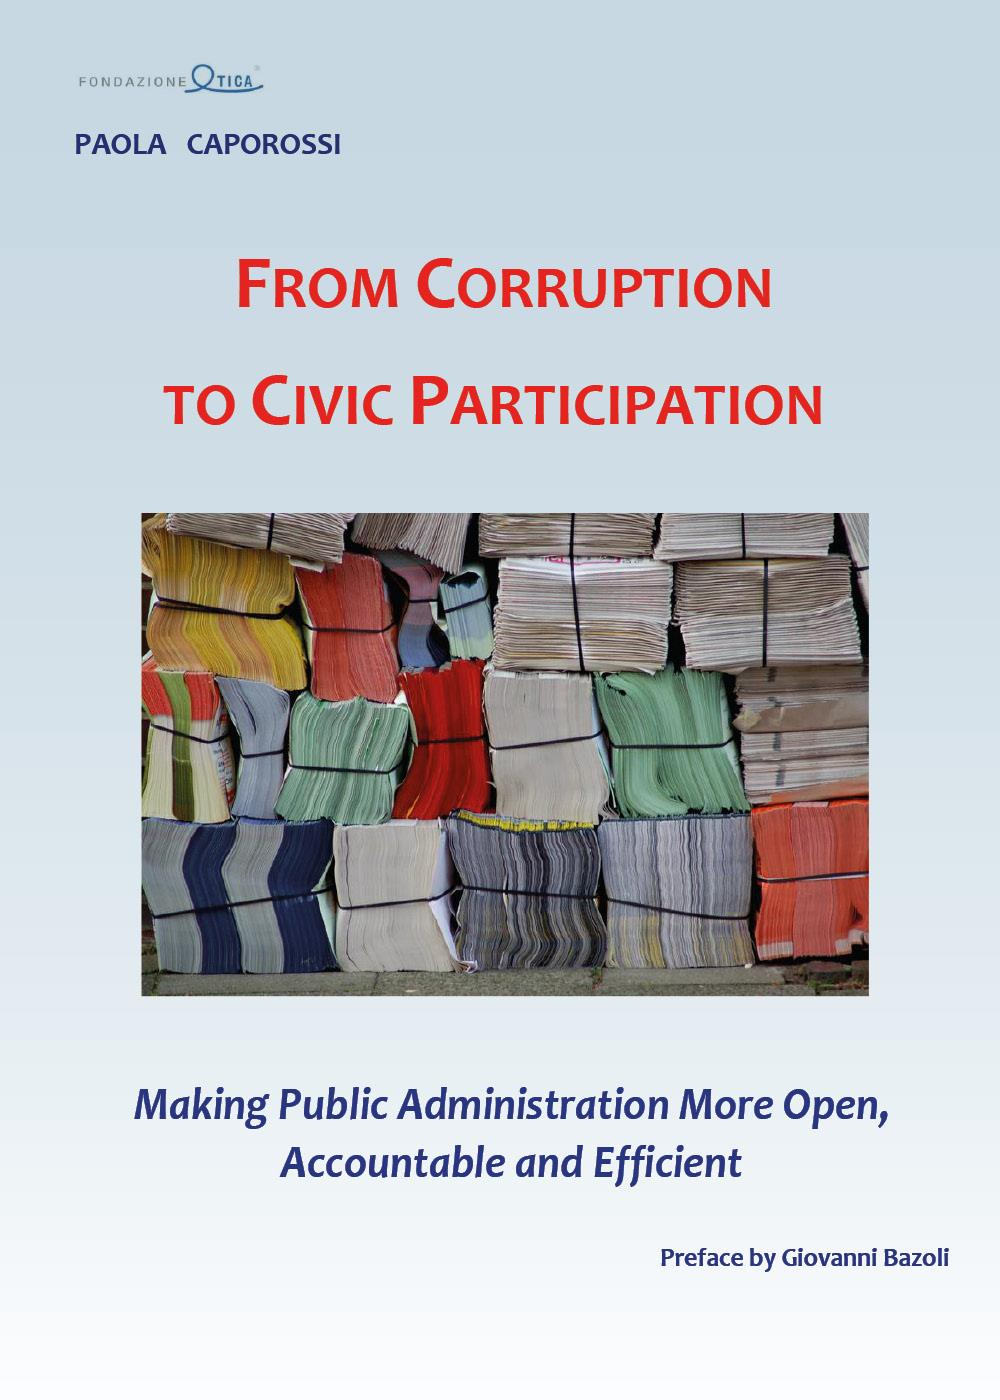 From Corruption to Civic Participation Making Public Administration More Open, Accountable and Efficient